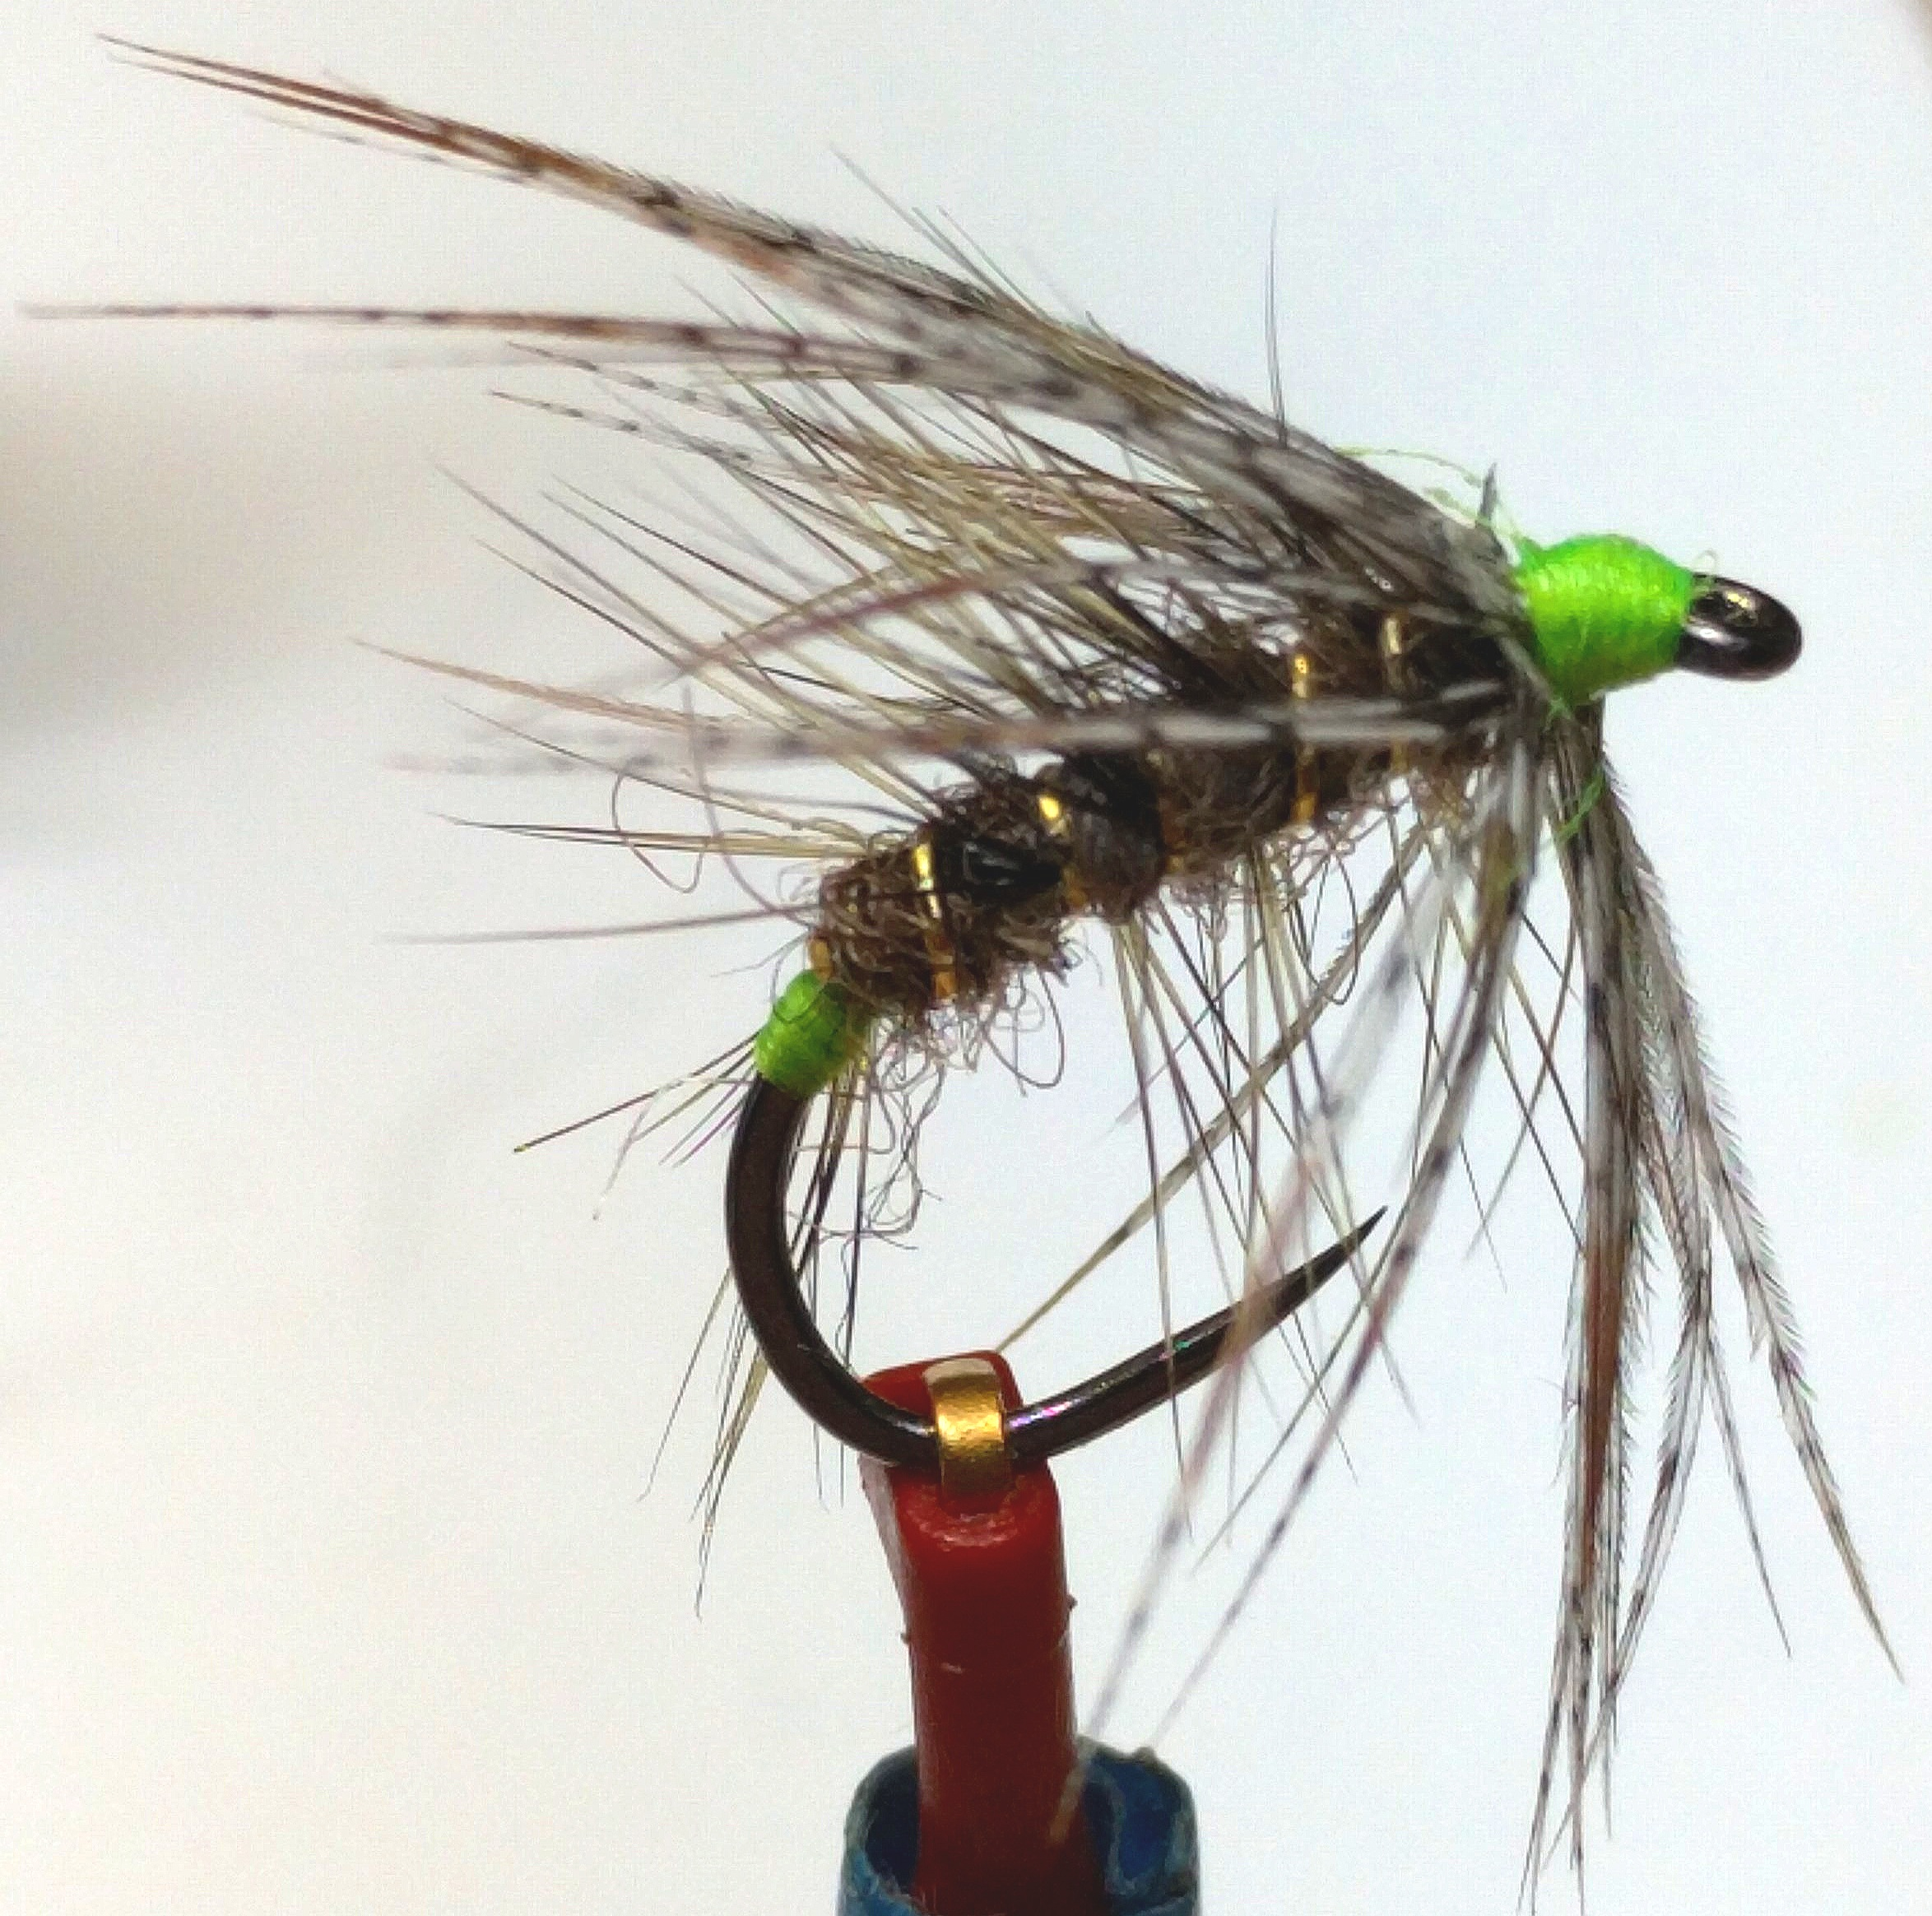 Jack Harford's Green Tail Caddis